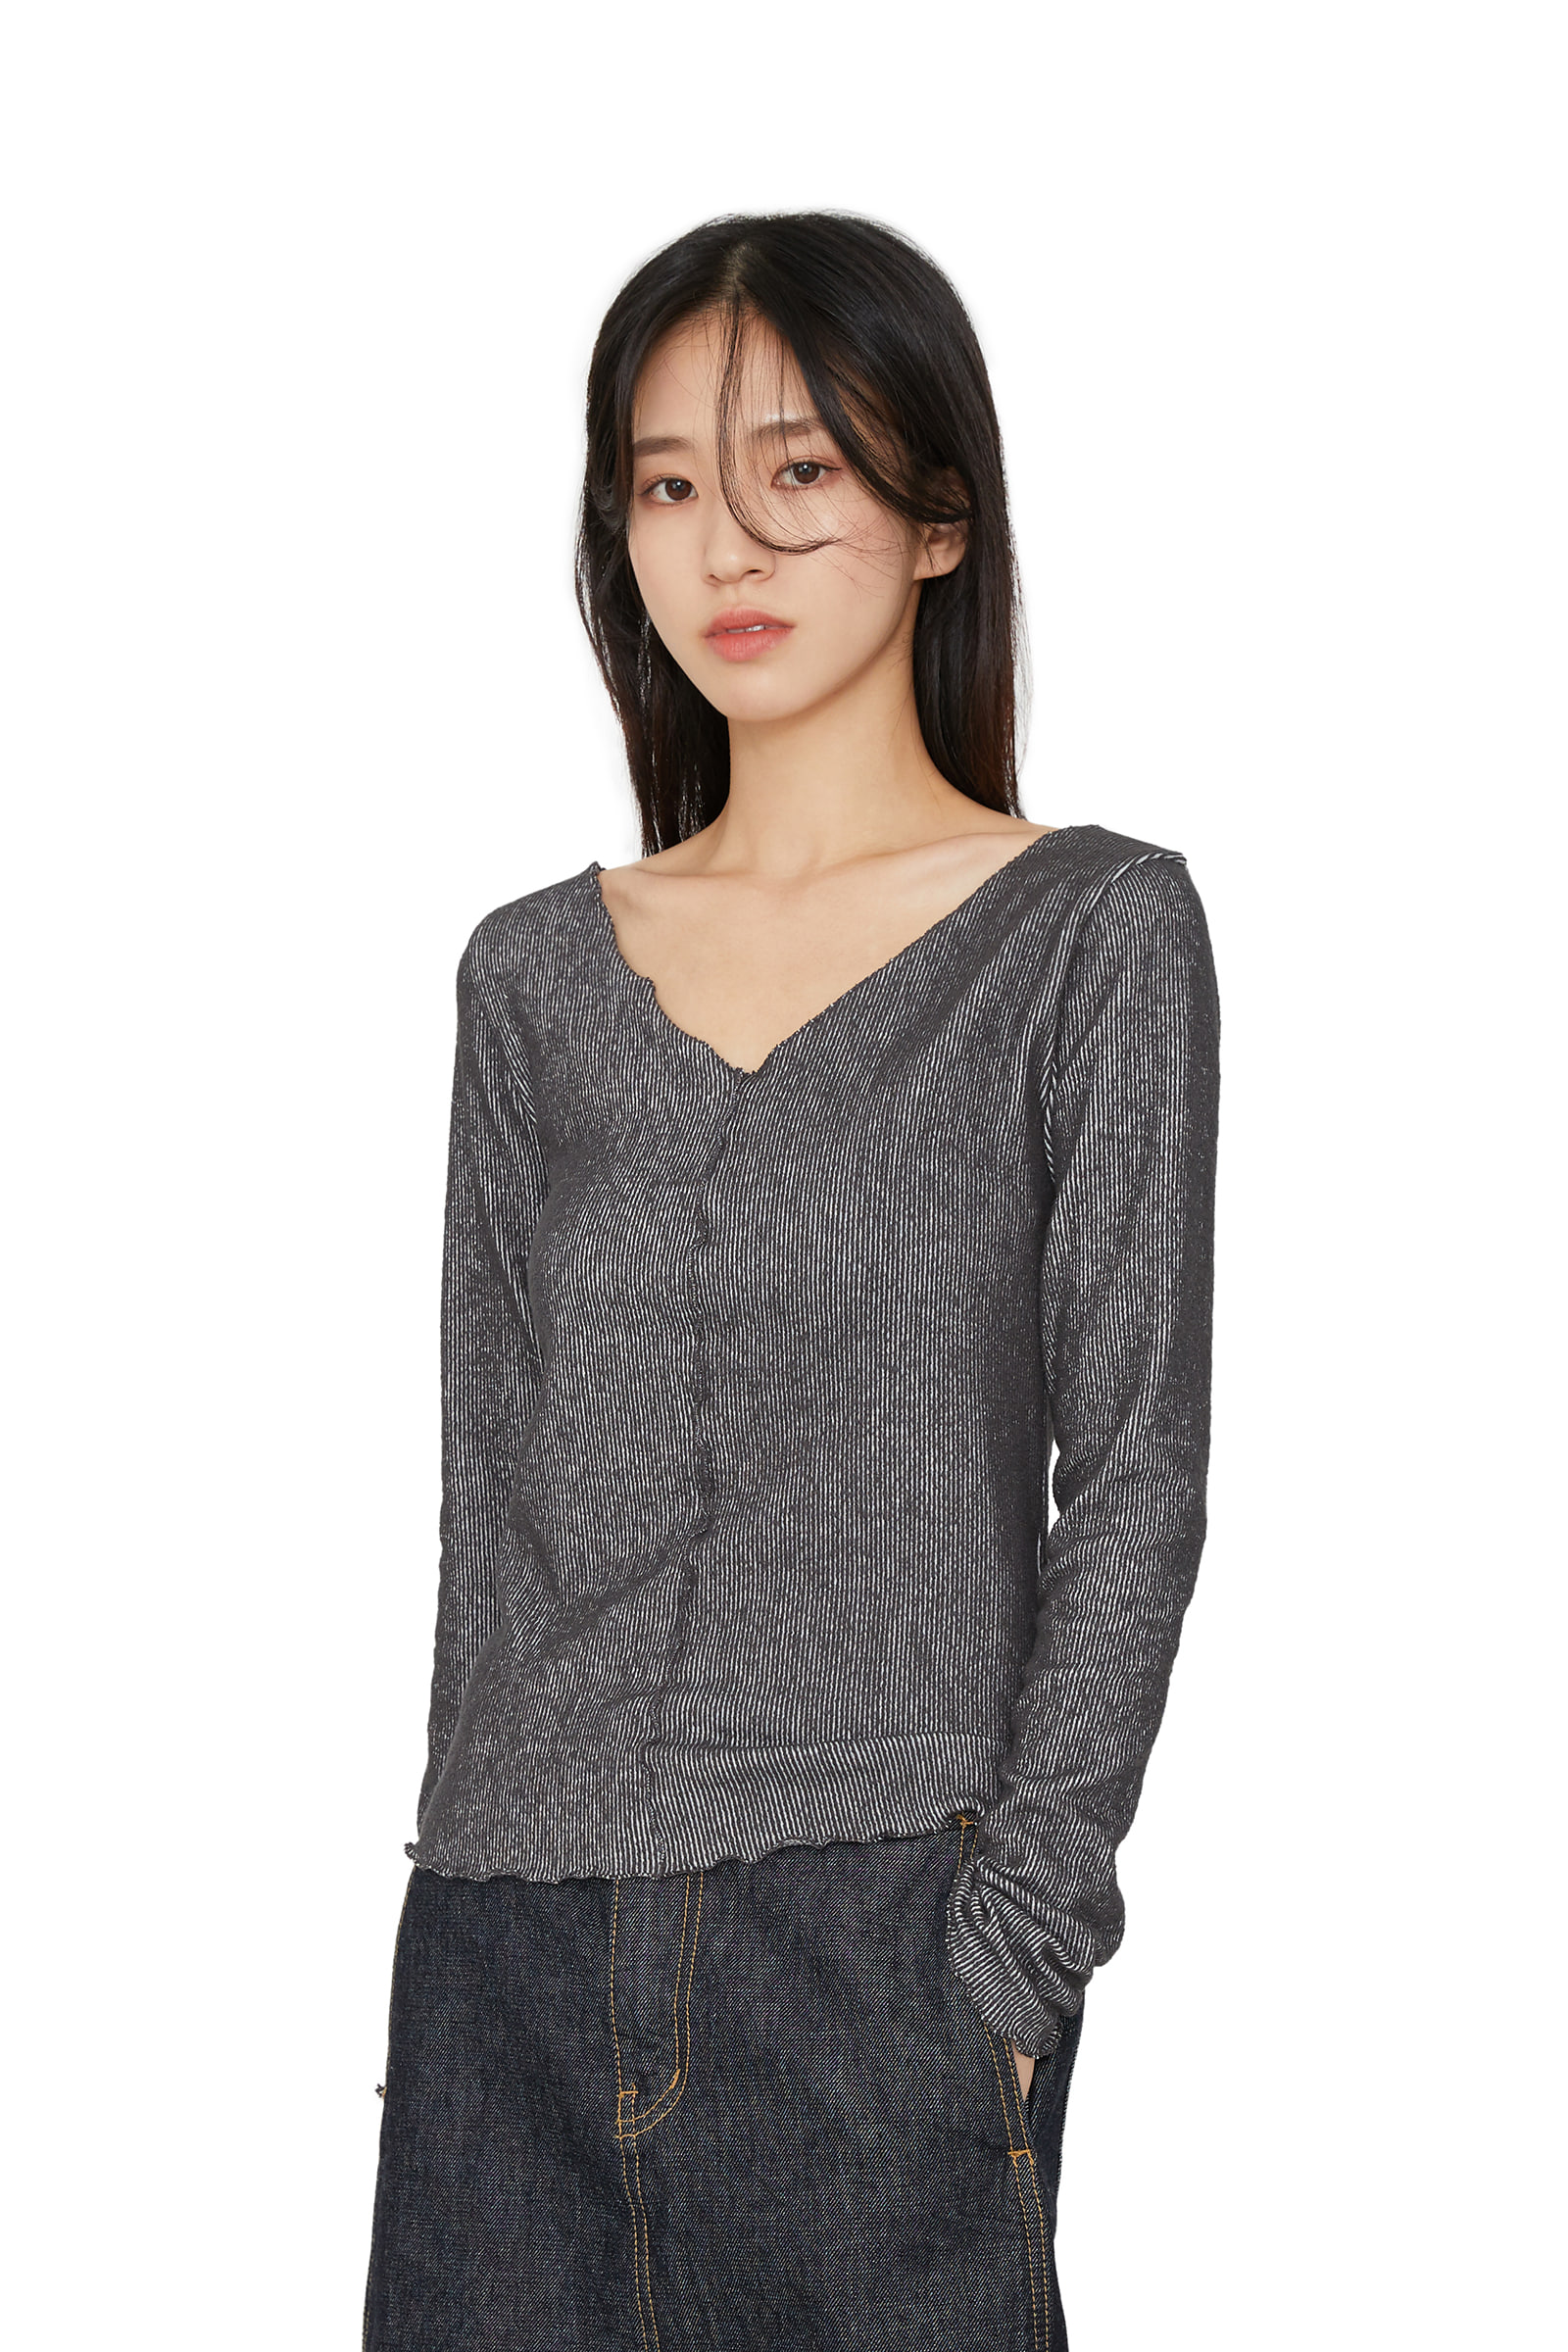 Wave pattern v-neck casual top